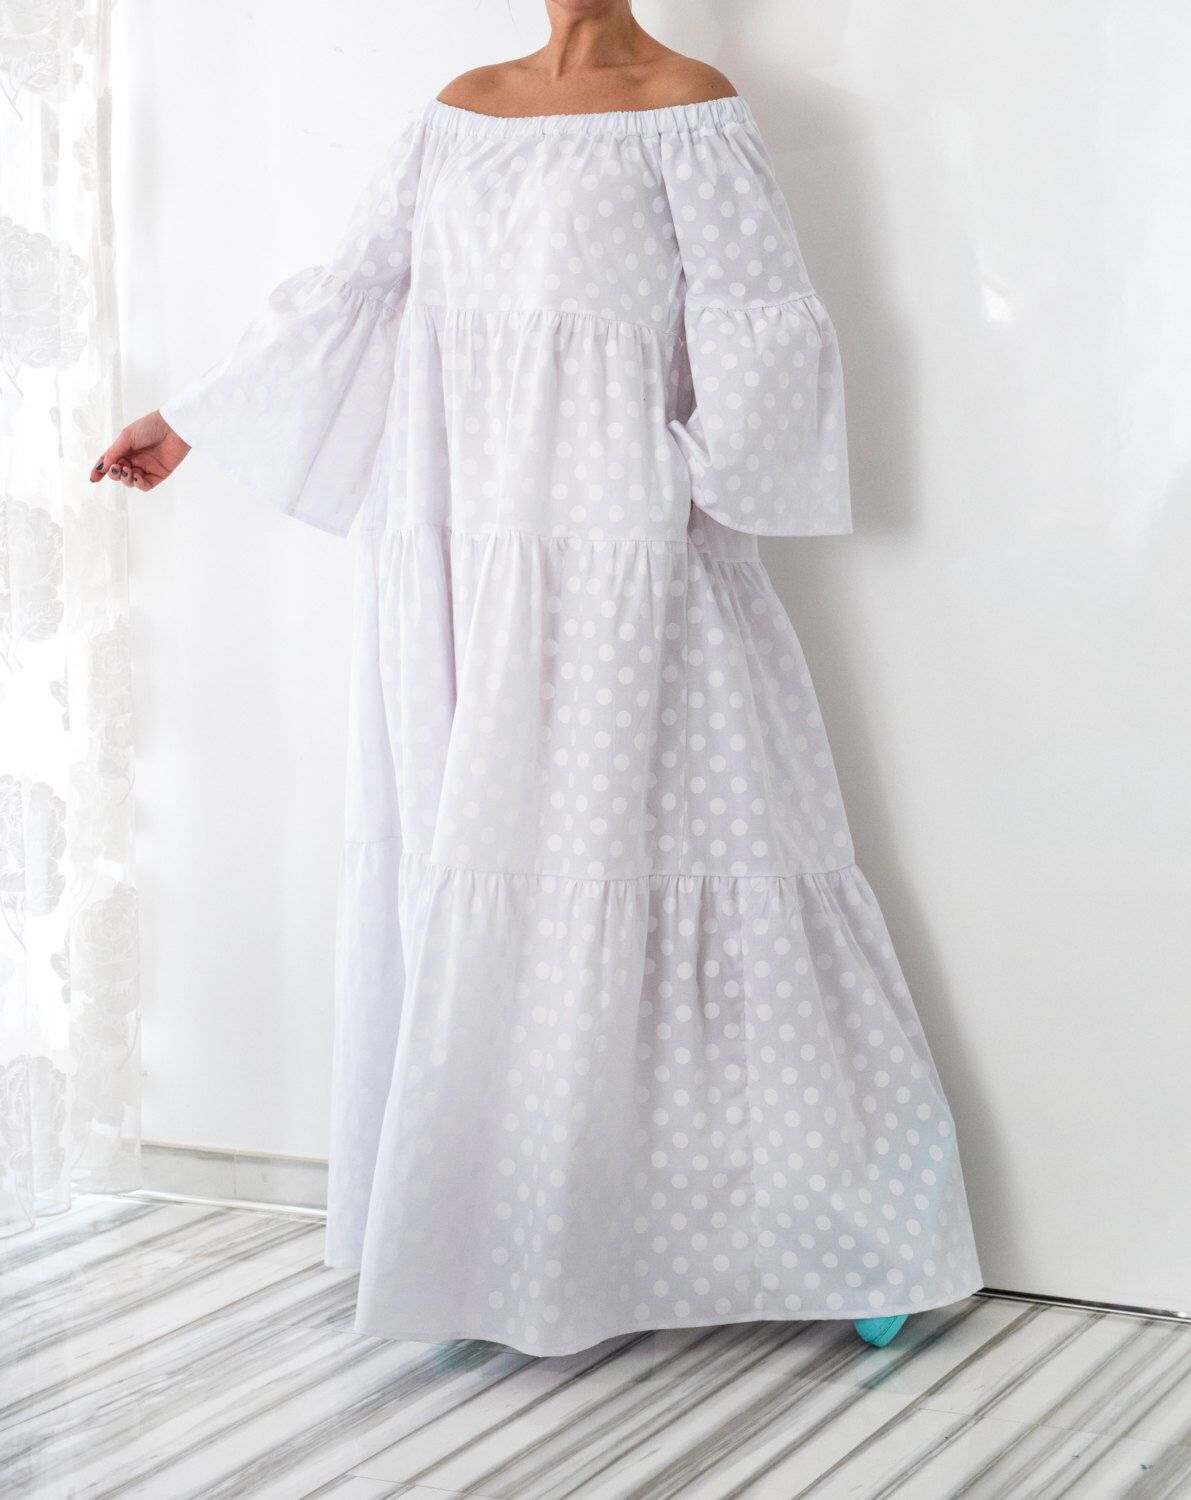 New ss collection white maxi dress boho dress plus size dress